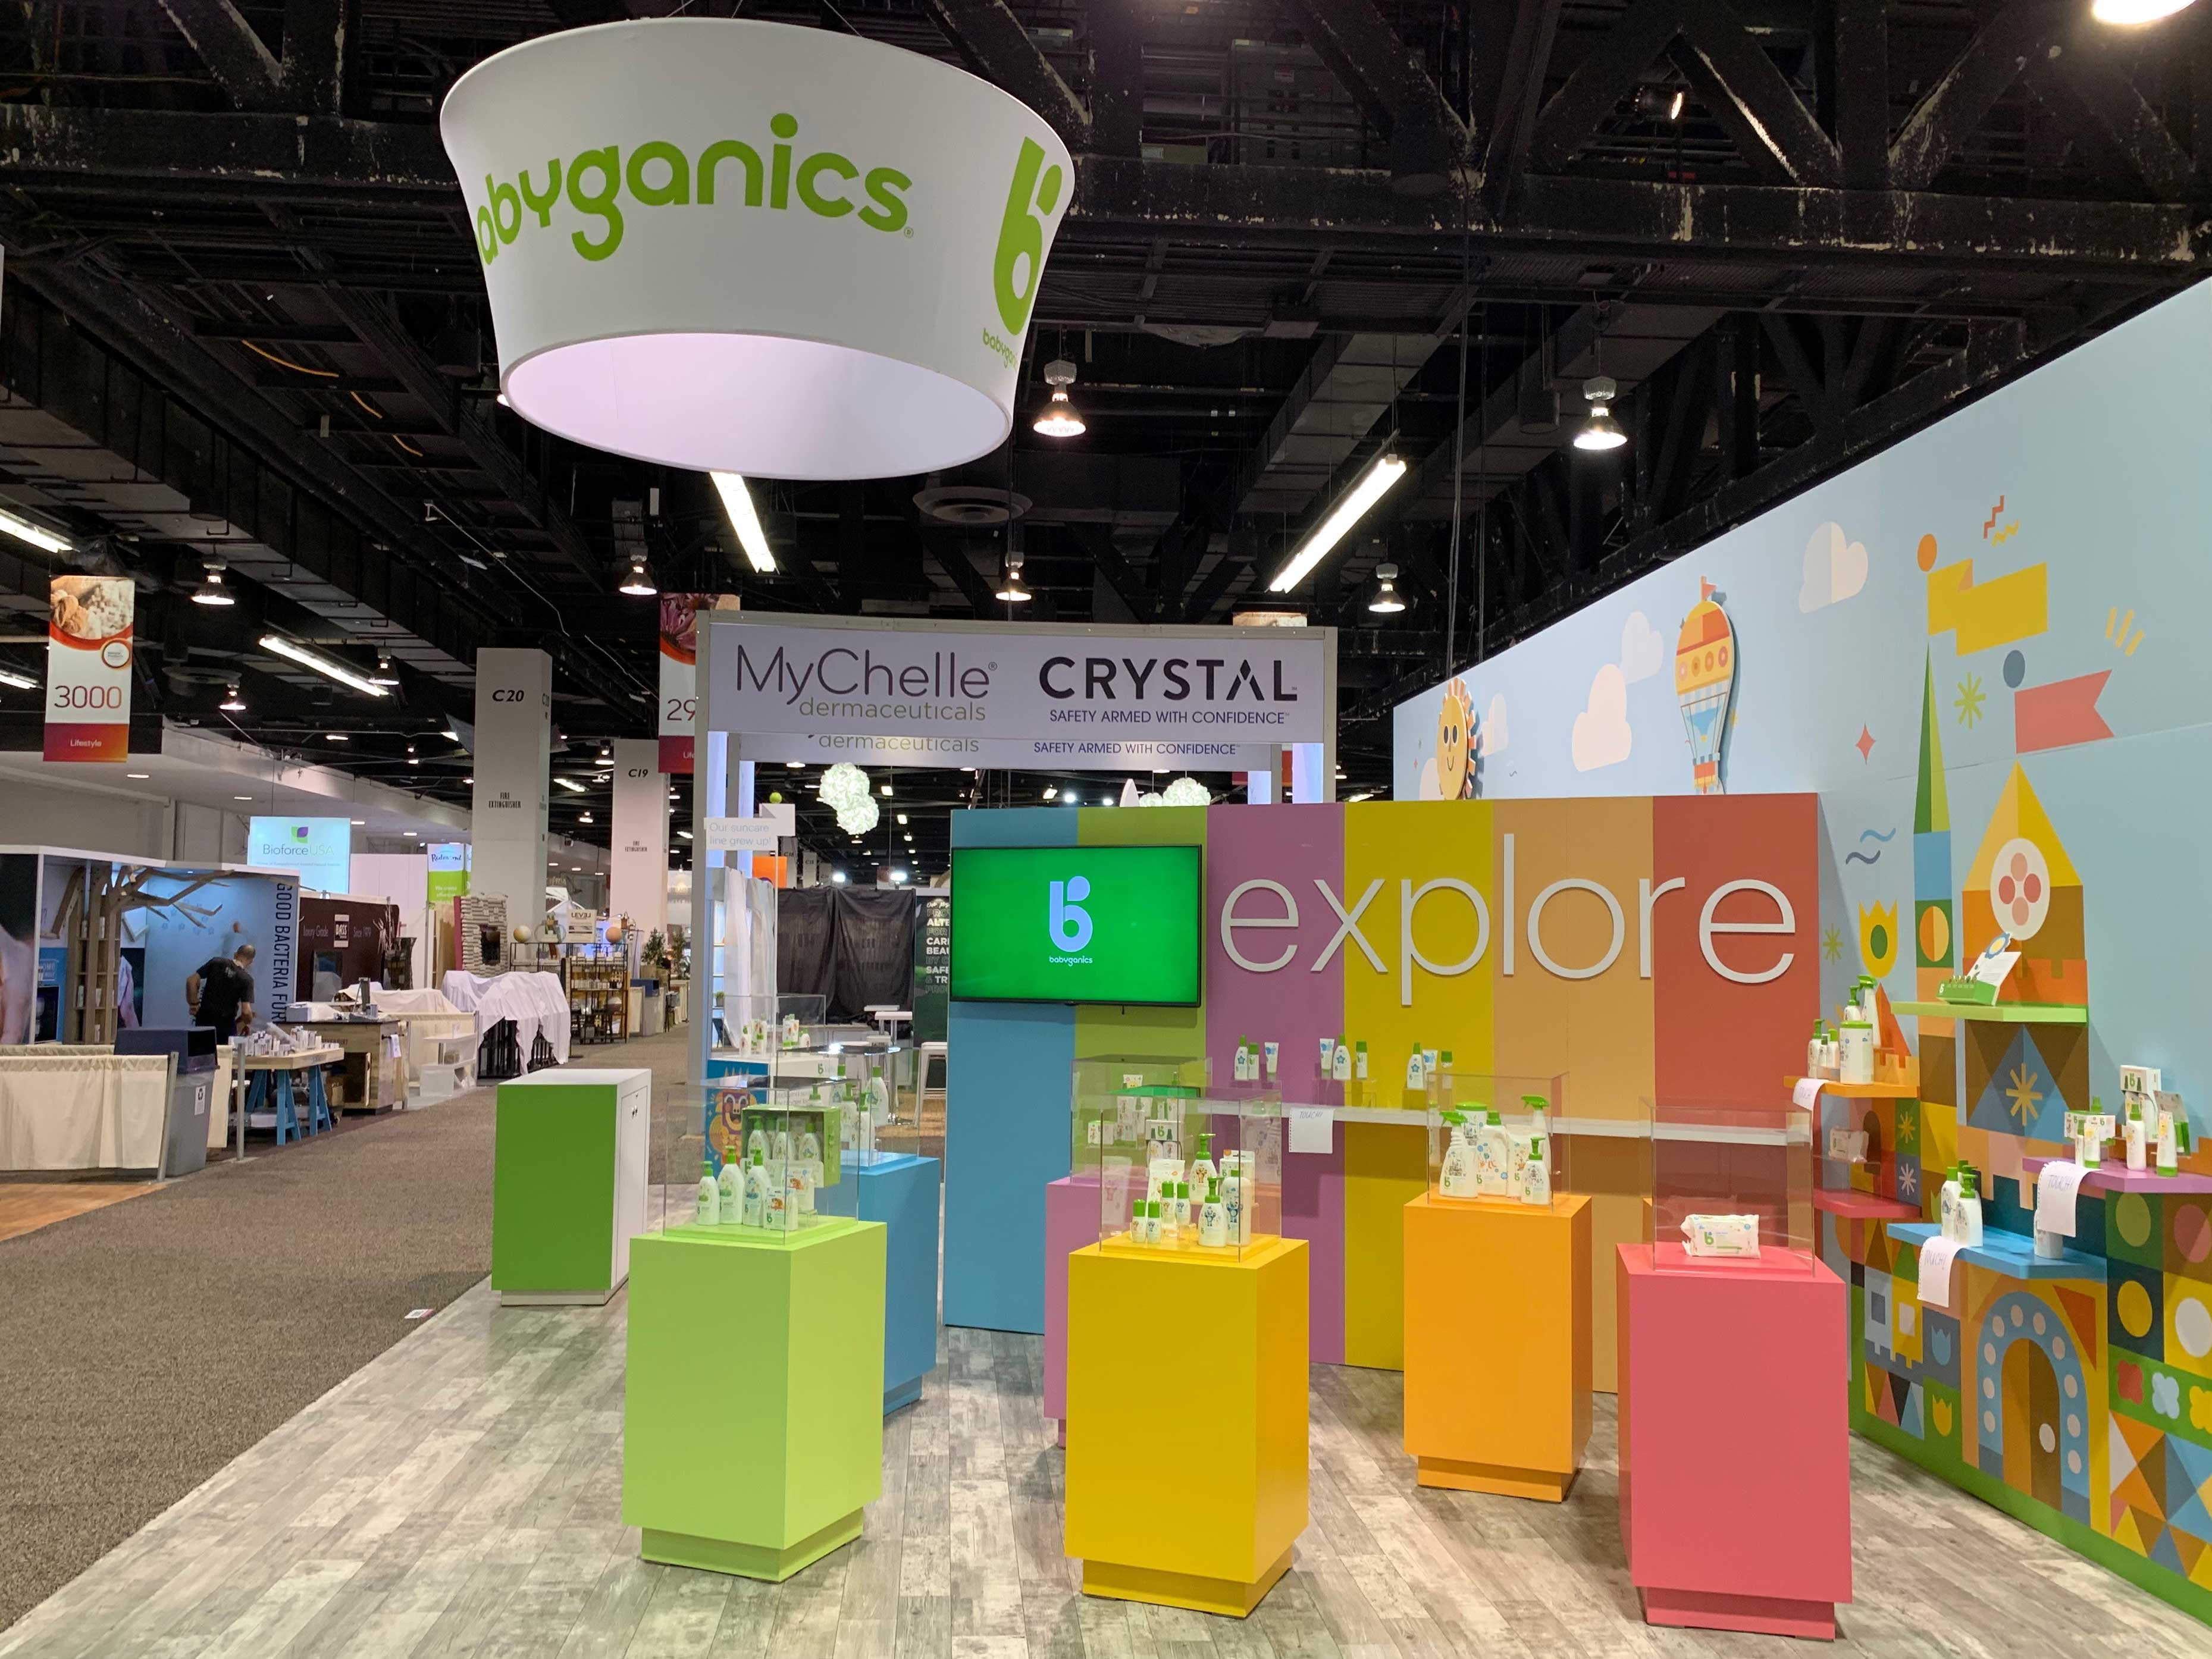 Trade show exhibit for Method cleaning products.